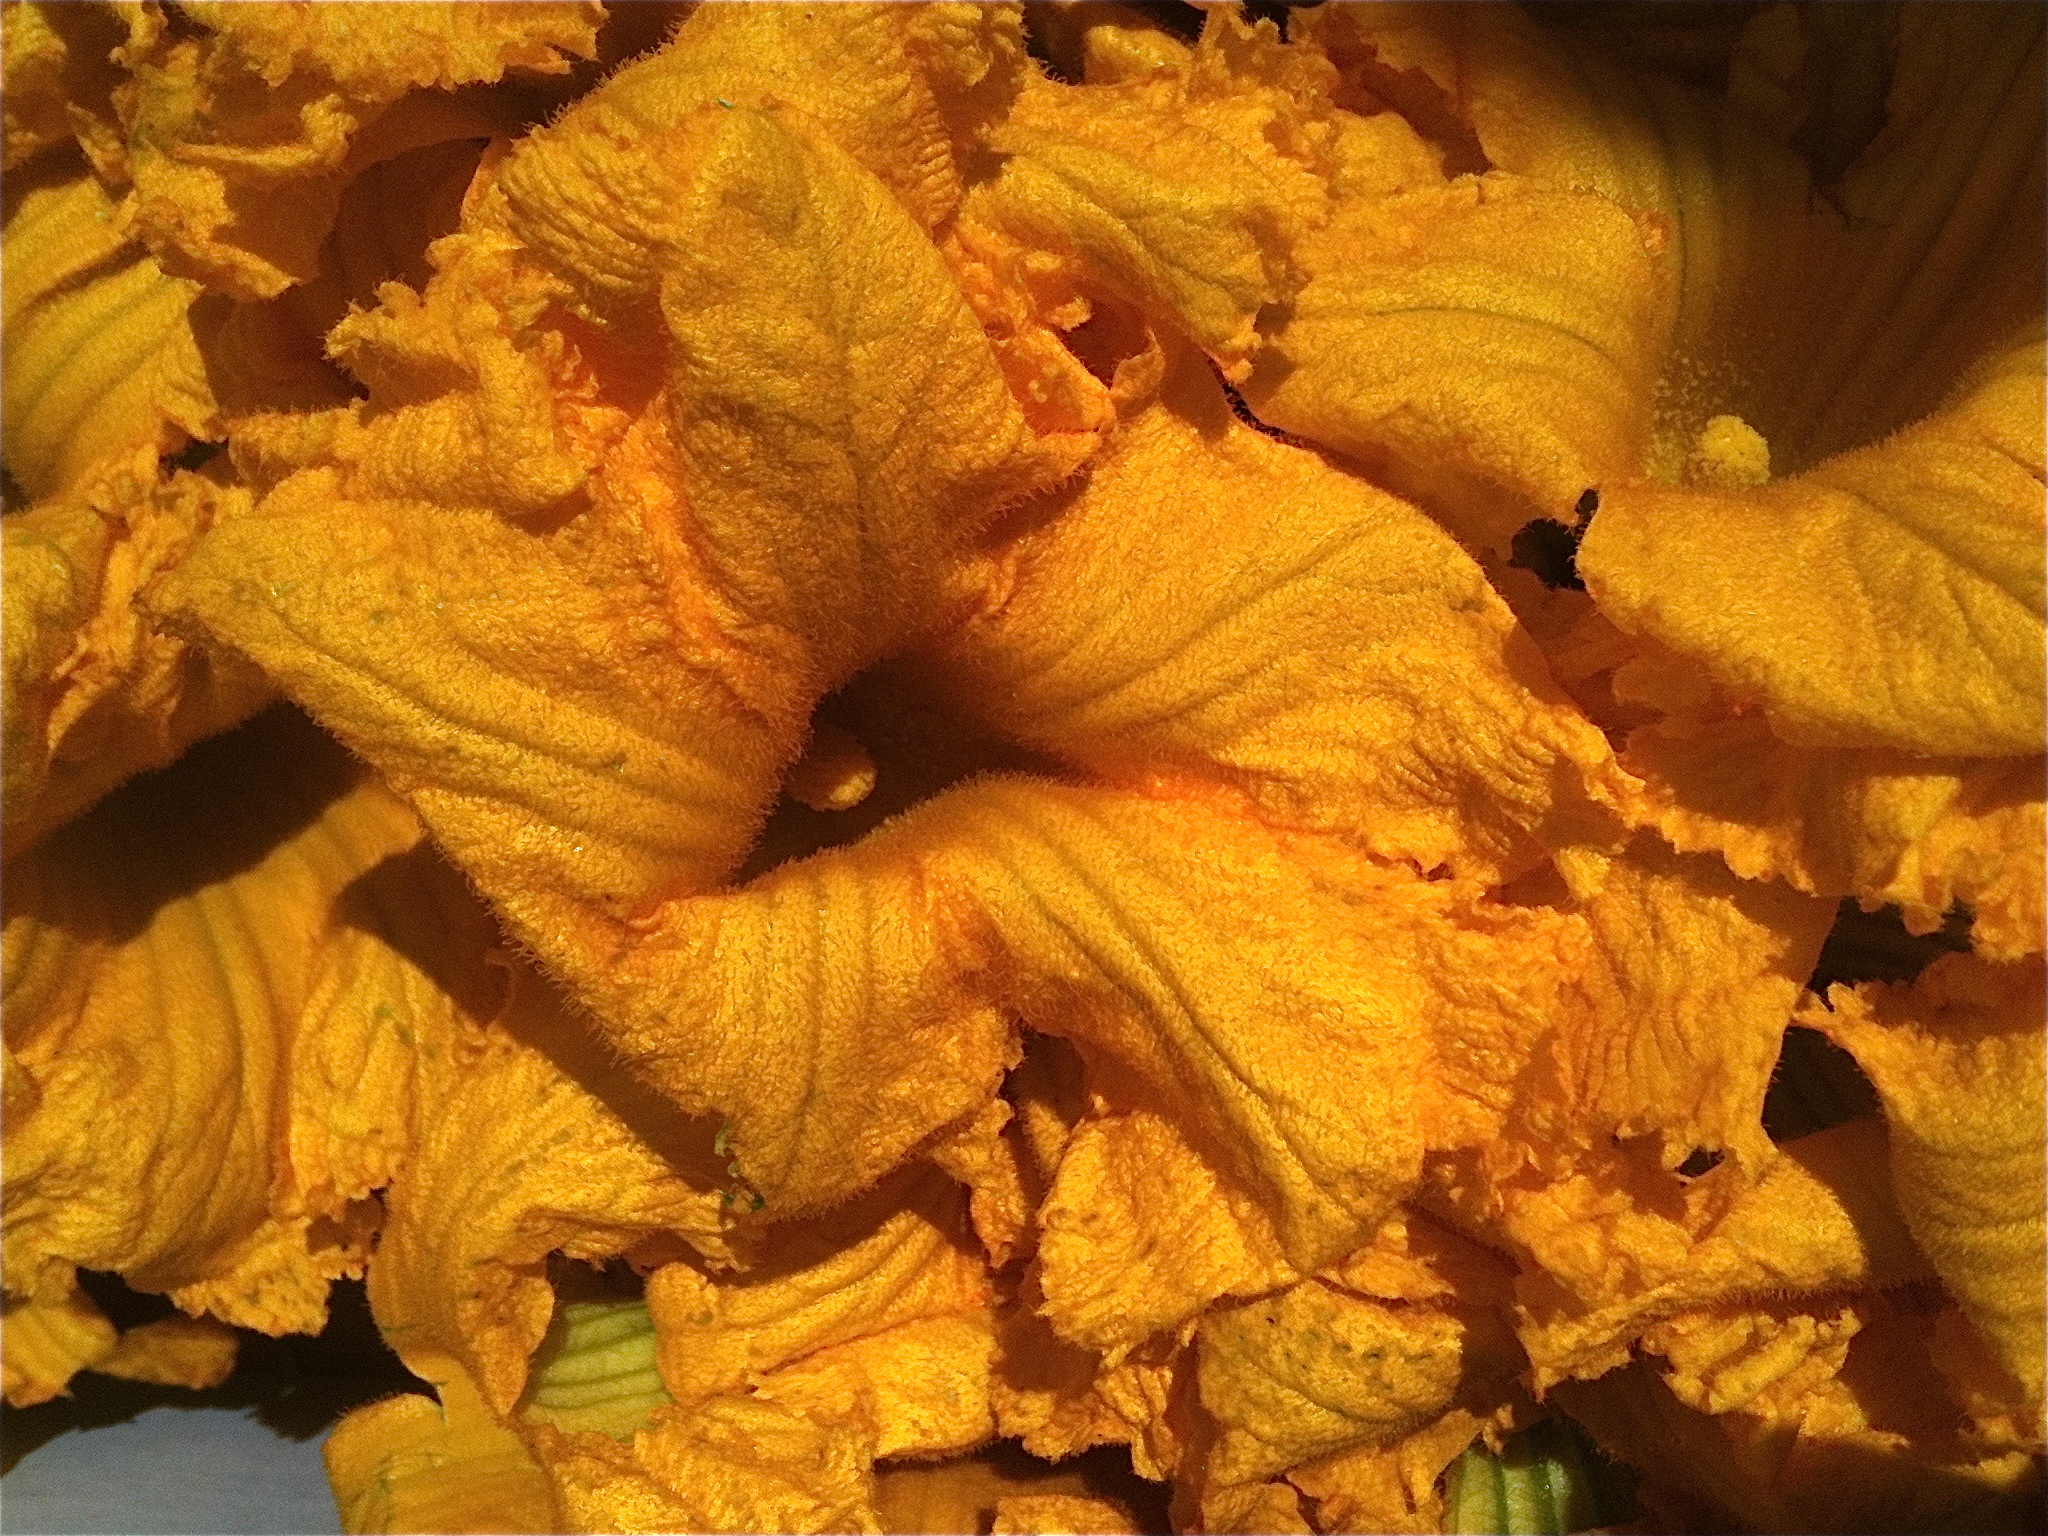 The most colorful and vibrant squash blossoms...